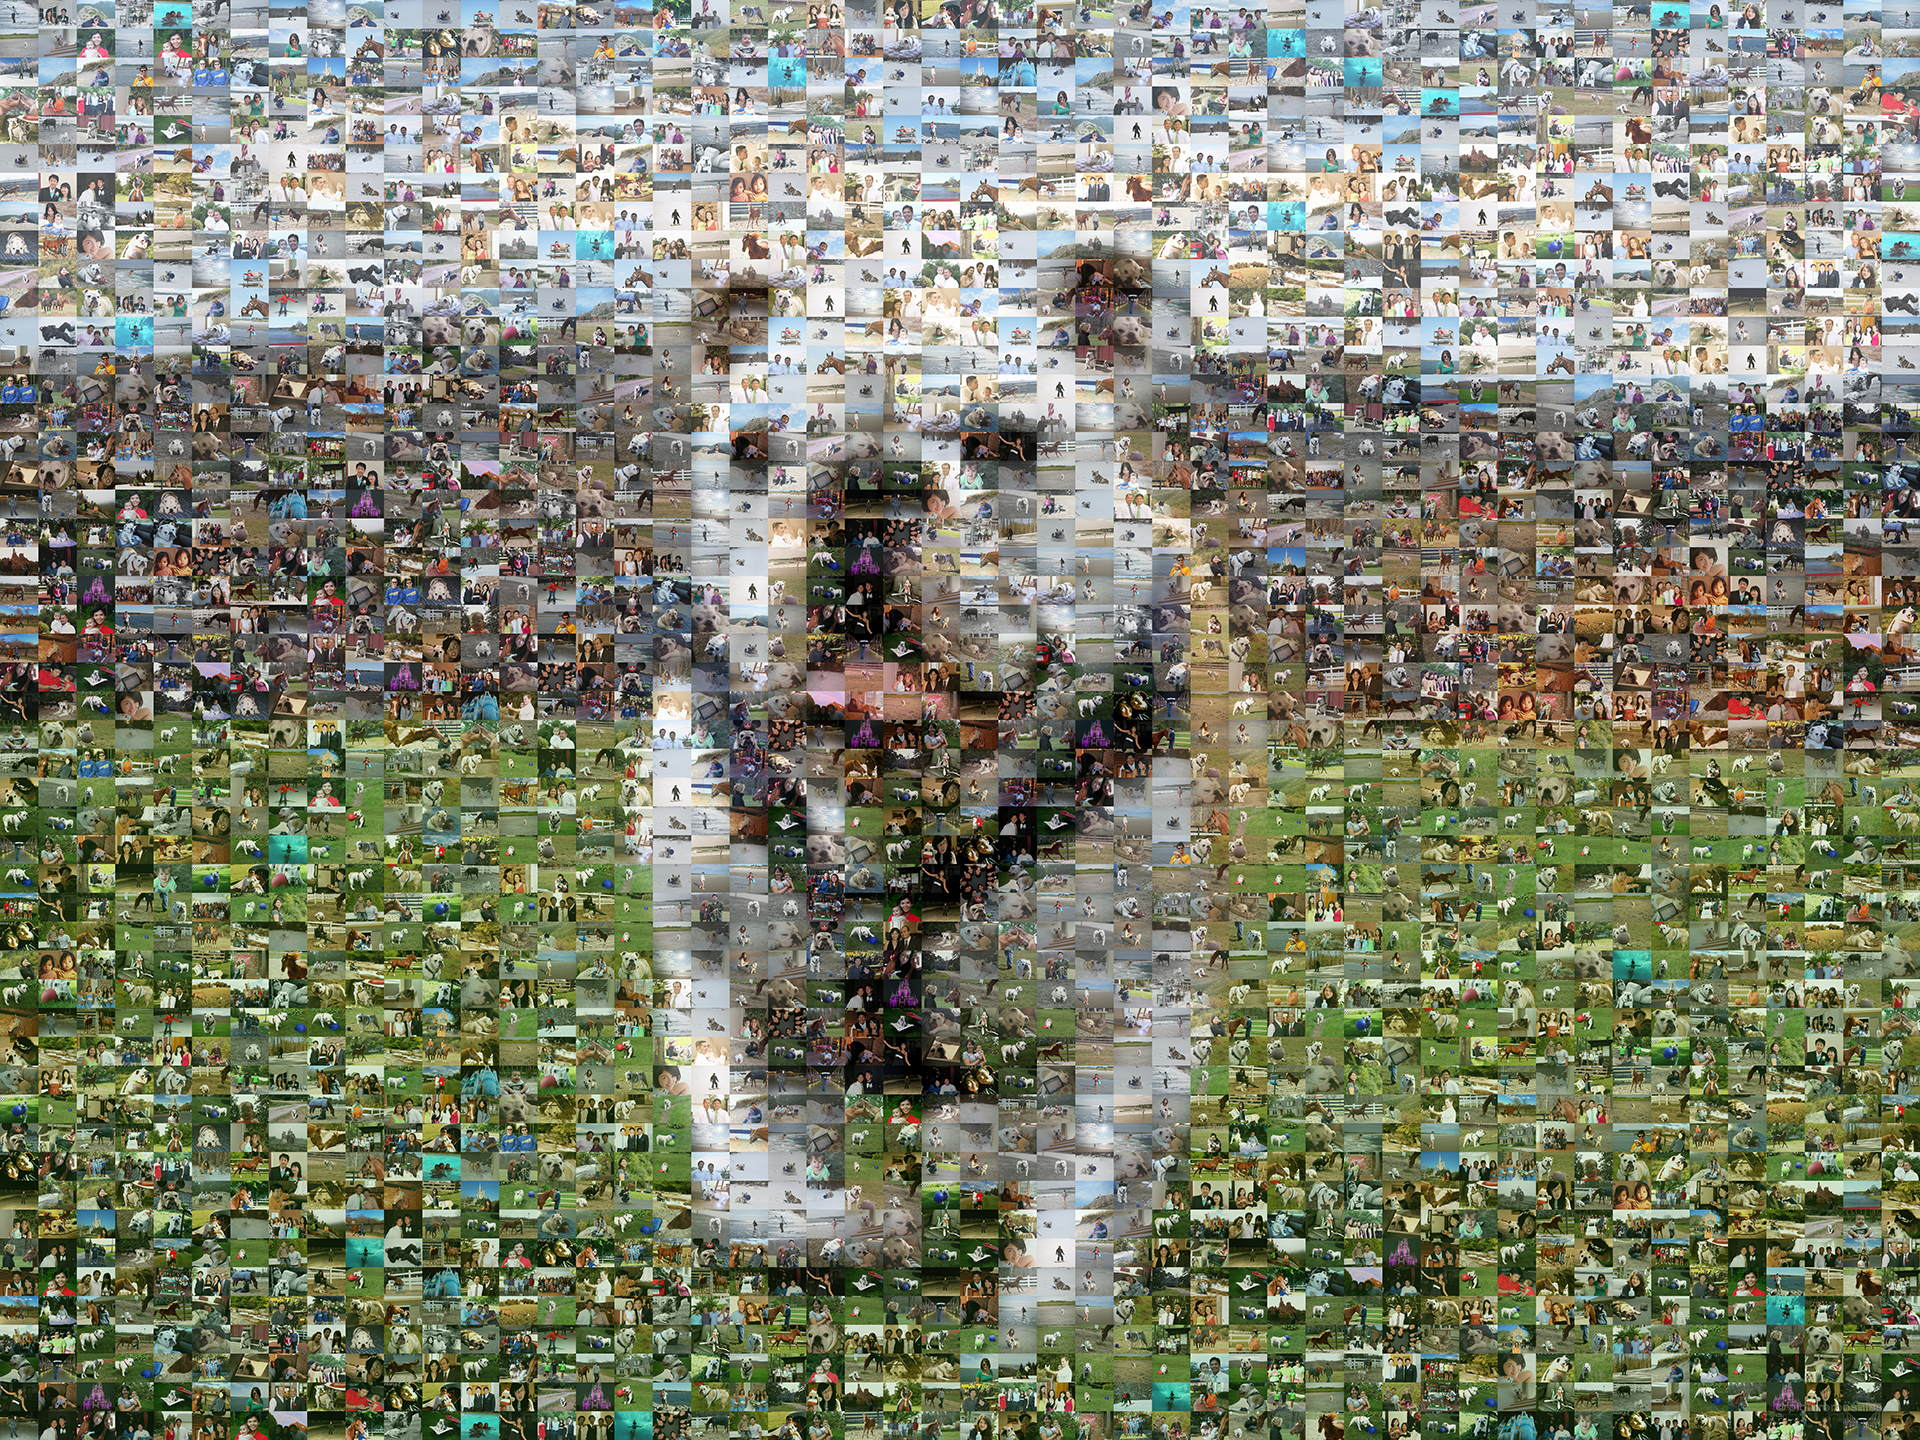 photo mosaic a mosaic of a favorite pet using 300 photos